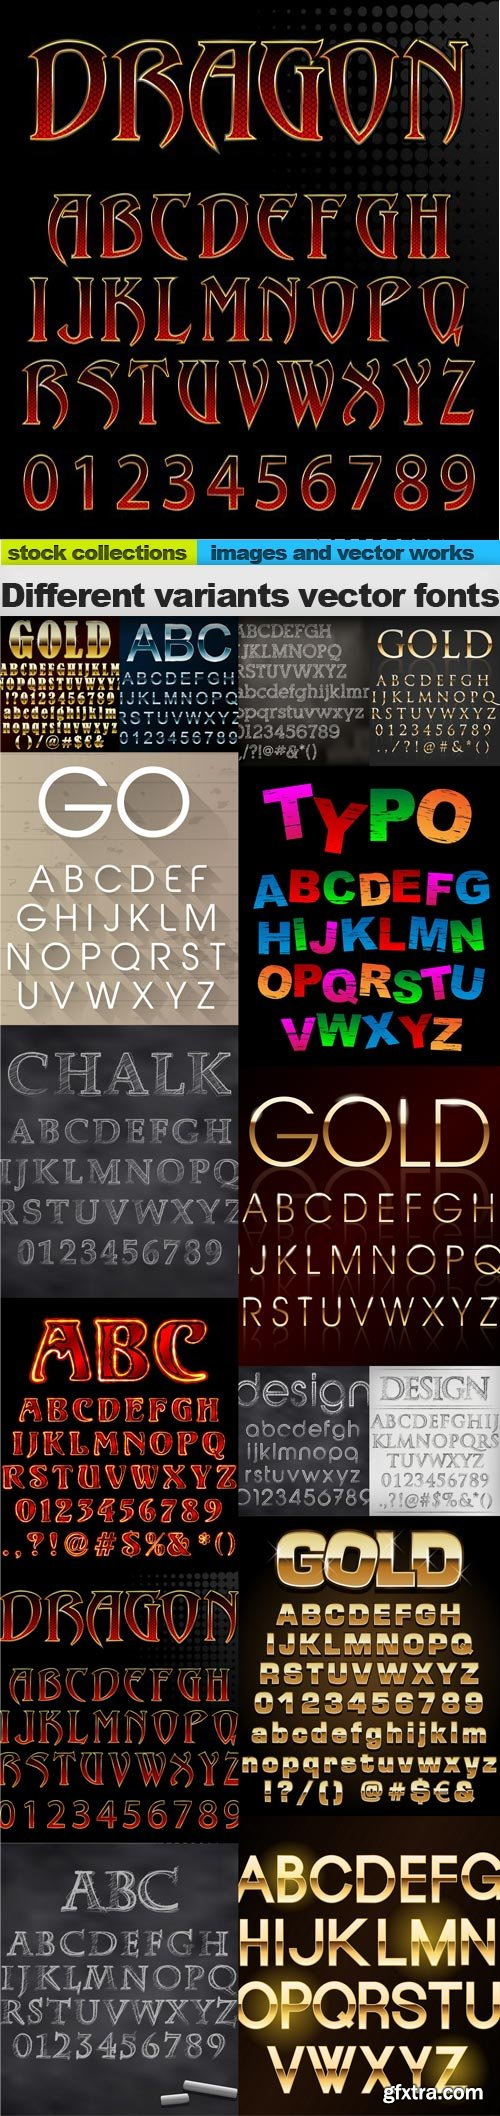 Different variants vector fonts, 15 x EPS